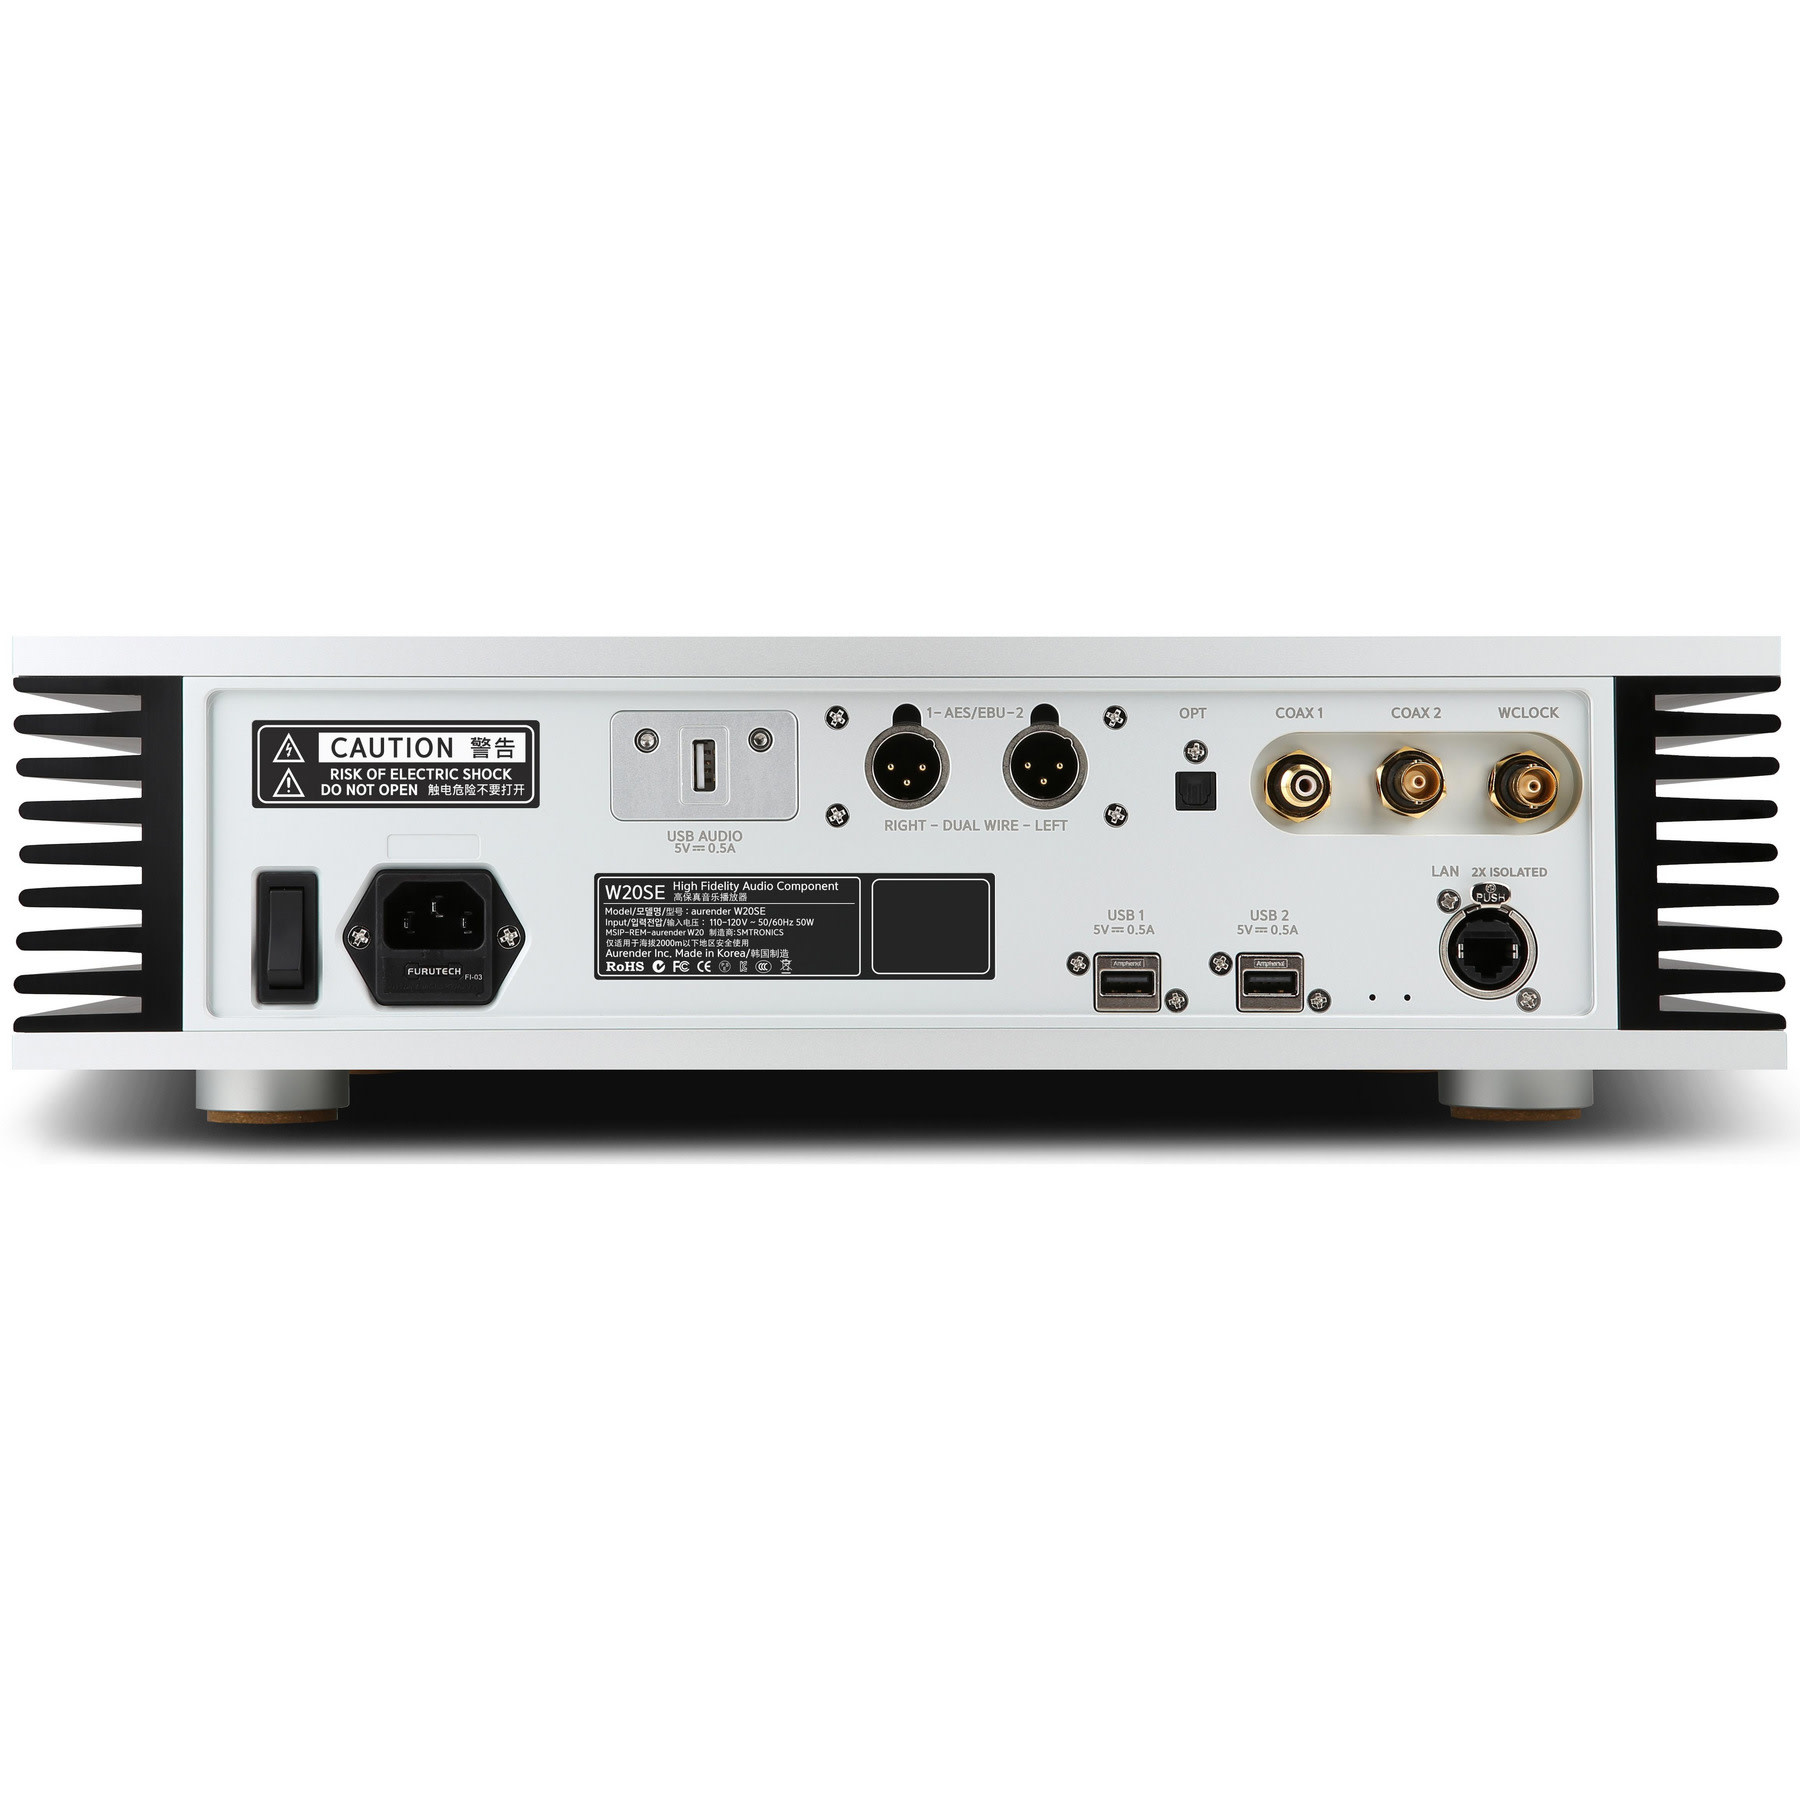 Aurender W20SE ( Special Edition ) Caching Reference Music Server and Streamer